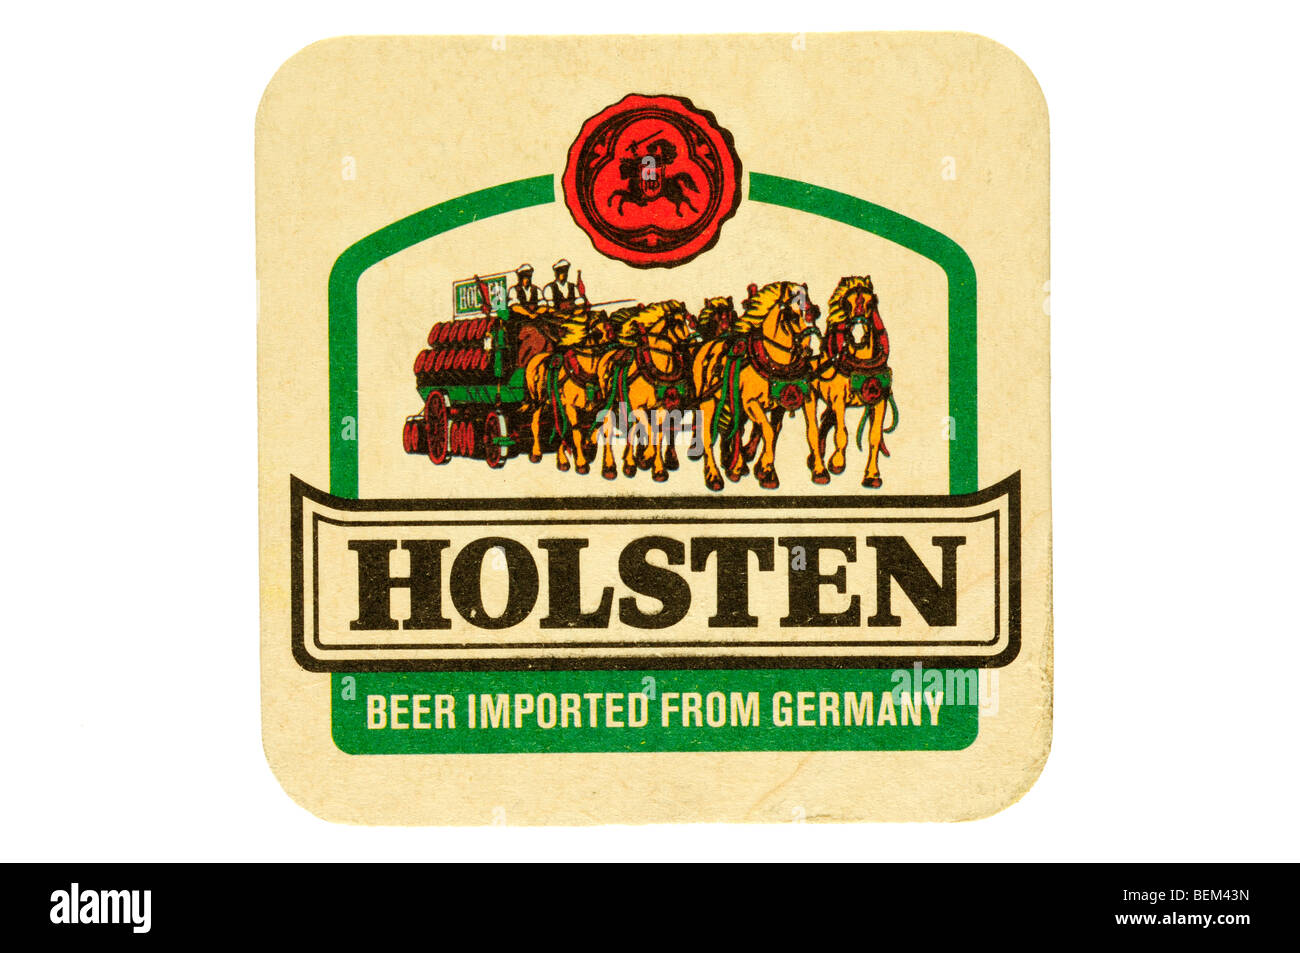 holsten beer imported from germany - Stock Image